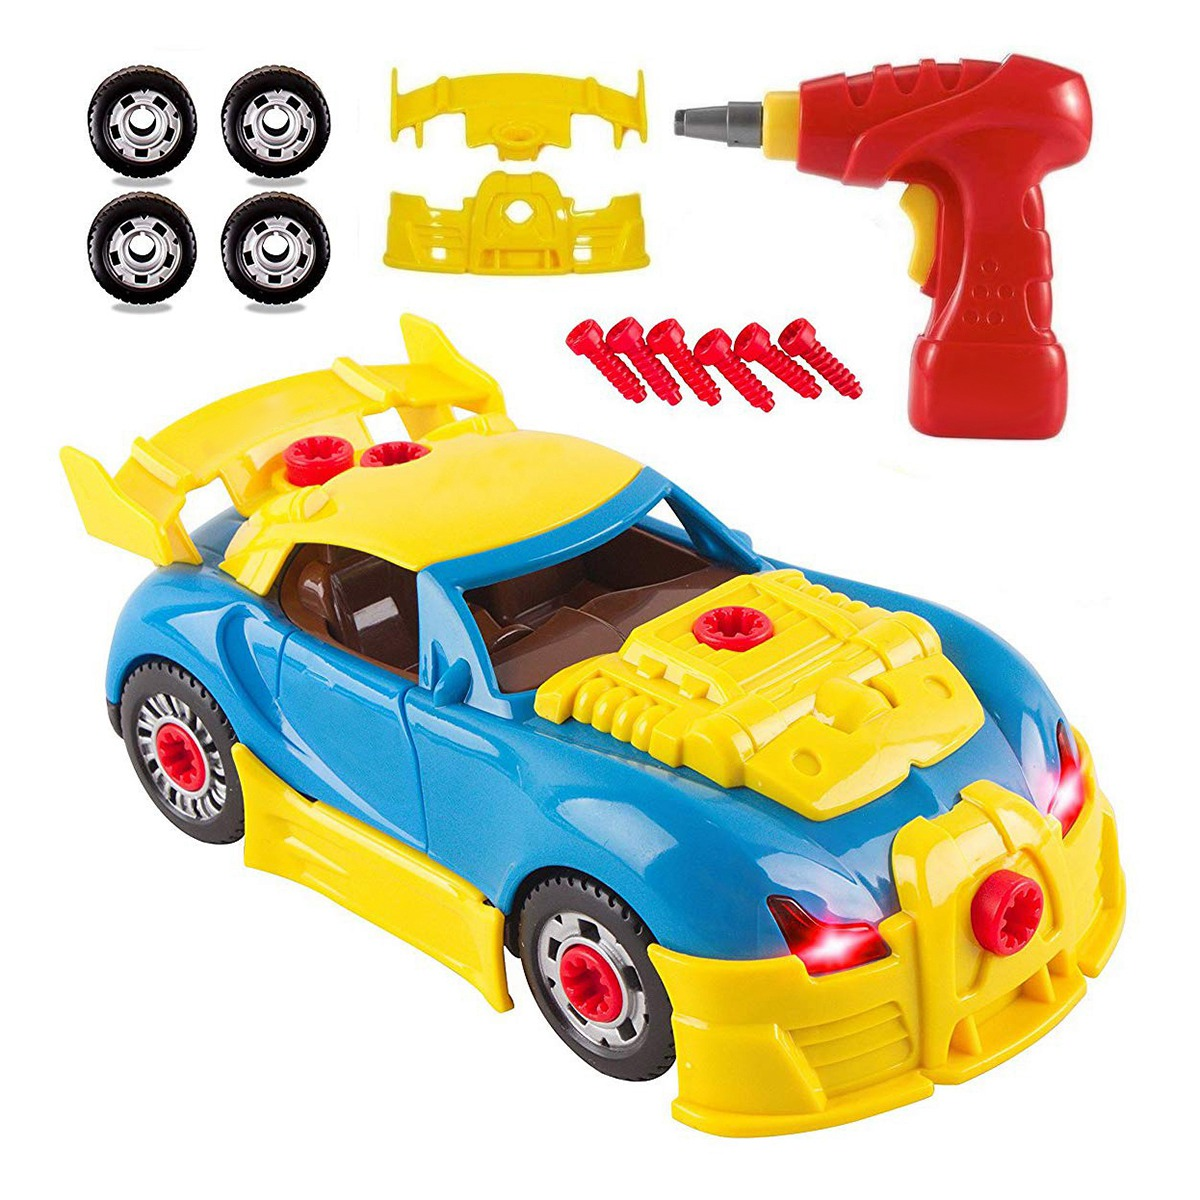 30Pcs Children'S Diy Racing Toy Electric Drill Disassembly Toy Car Assembly Disassembly Toy Children'S Hands-On Screw Car Puzzle